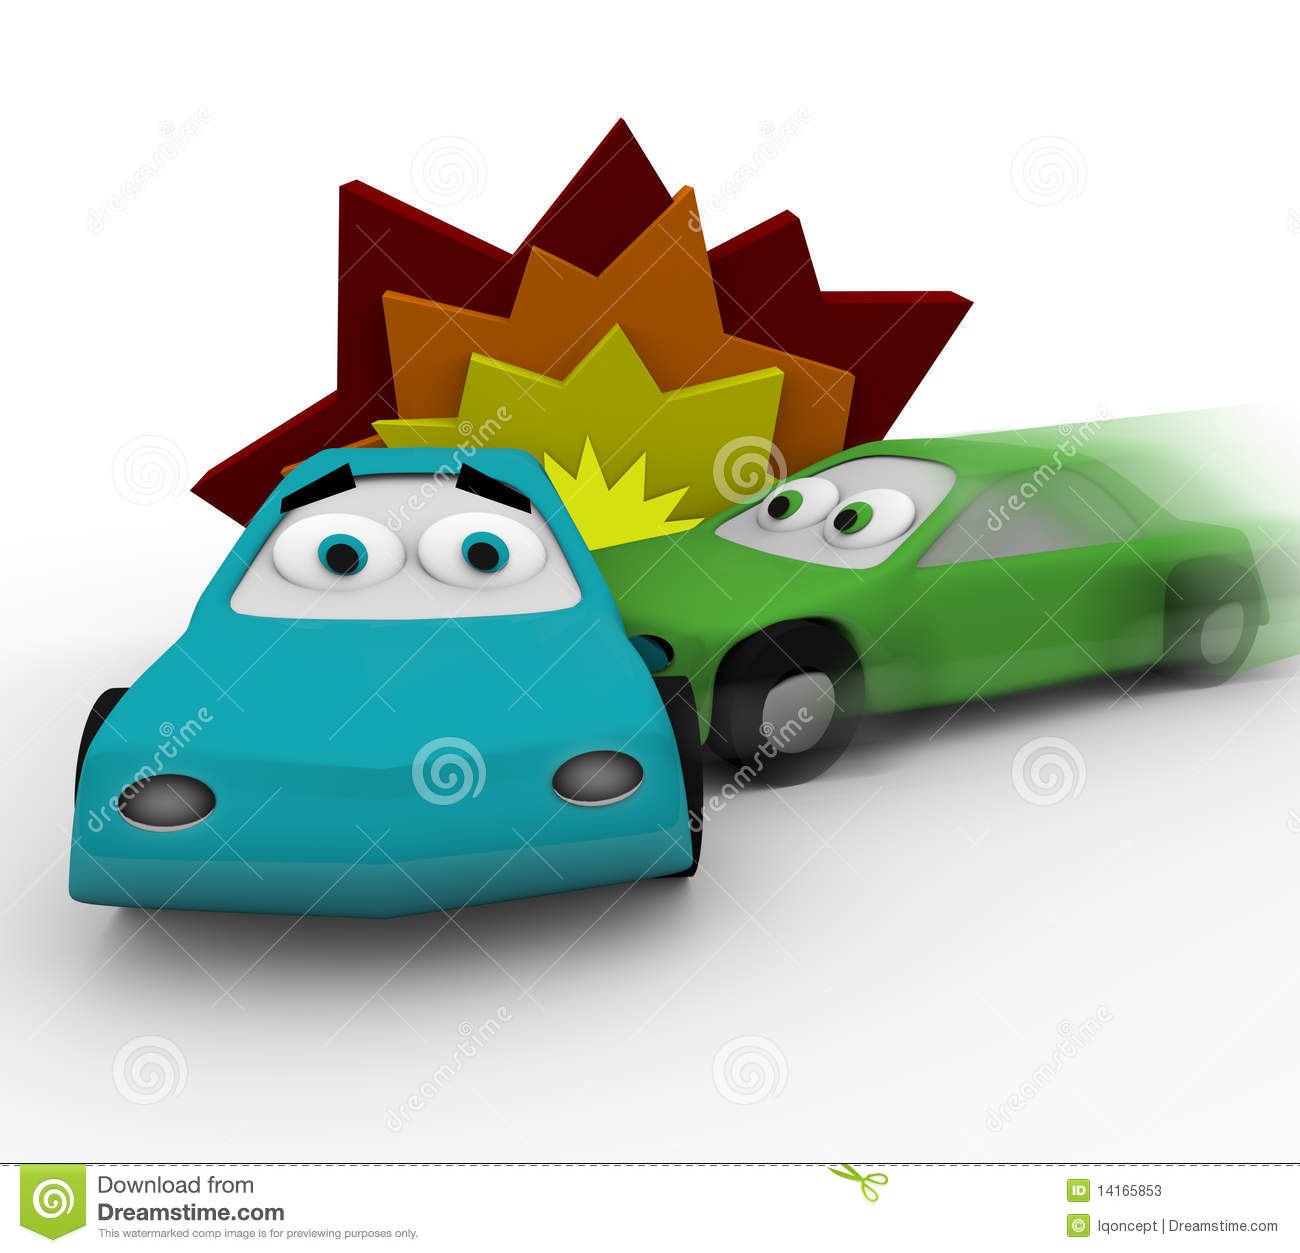 Crash Two Cars Accident Stock Illustrations – 139 Crash Two Cars ...